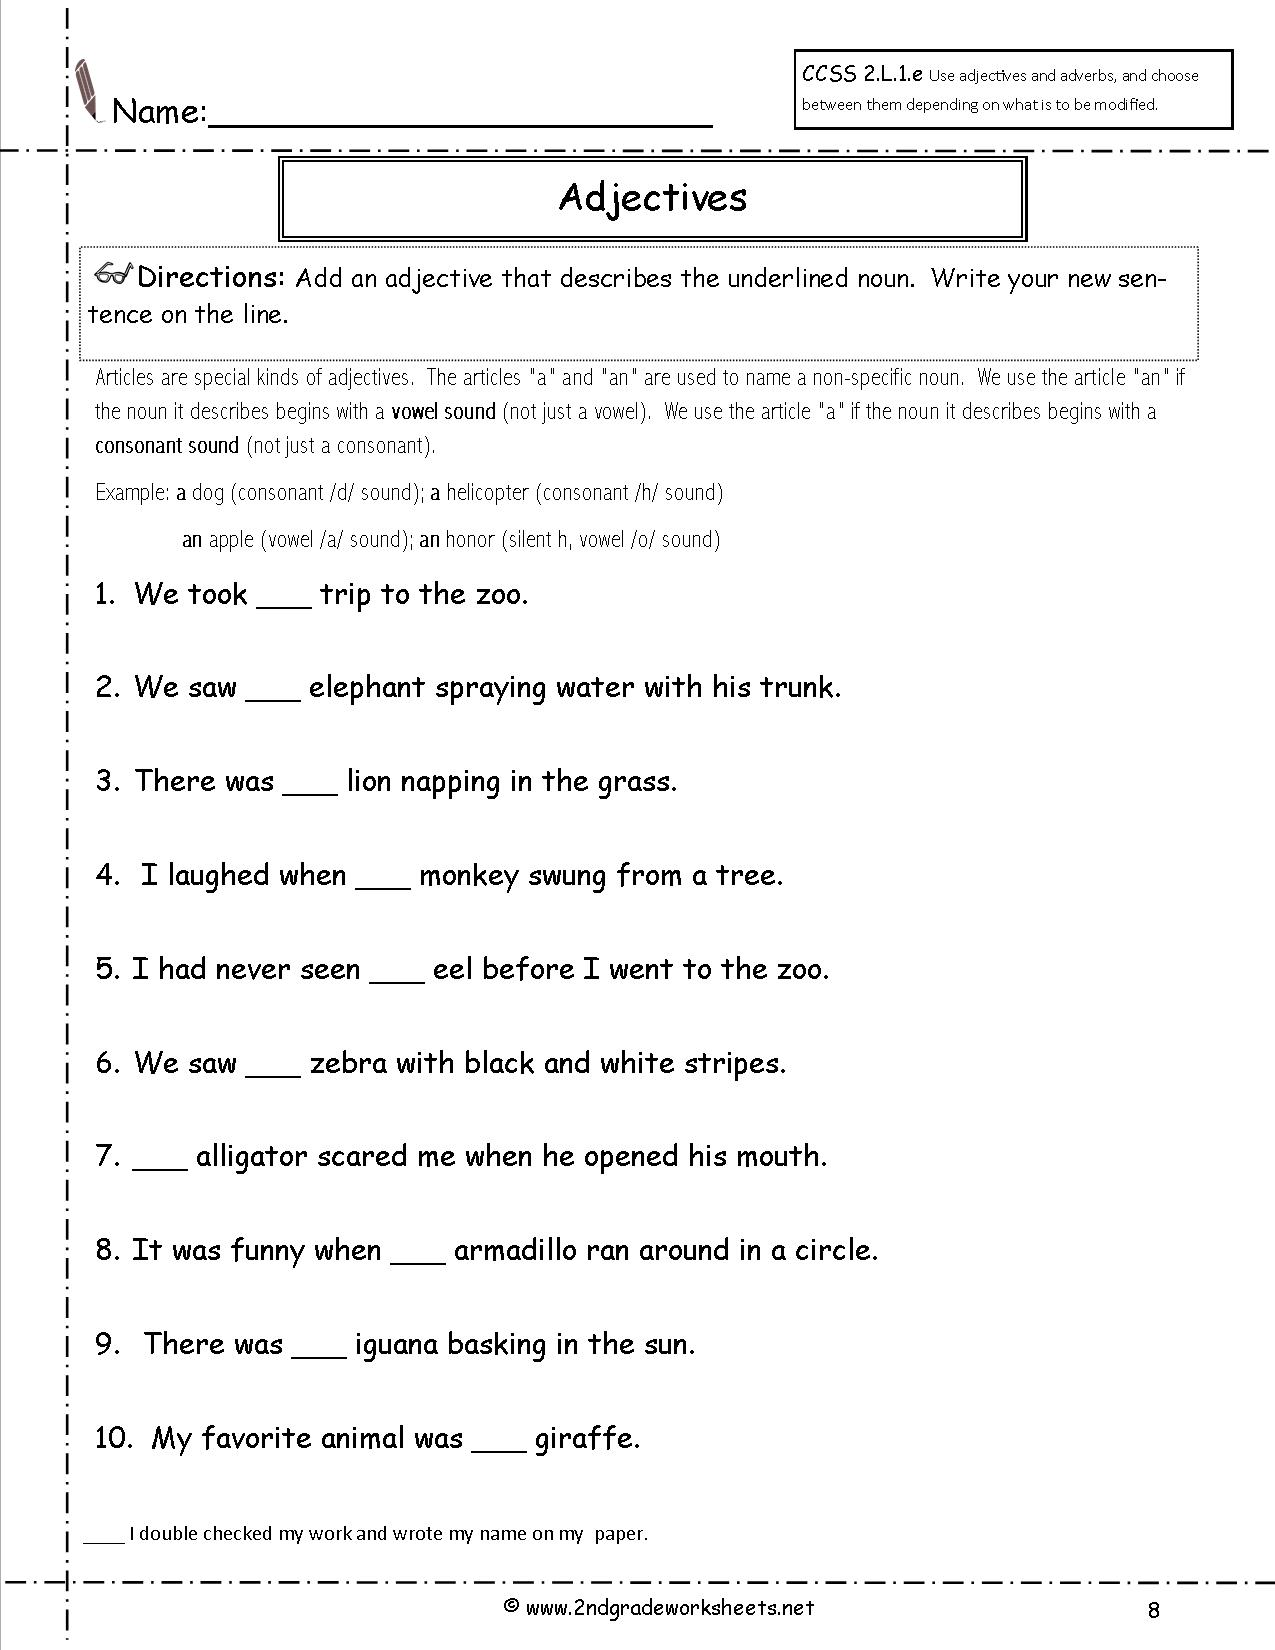 Worksheets Ged Grammar Worksheets free printable grammar worksheets for high school 17 best ideas about on pinterest school